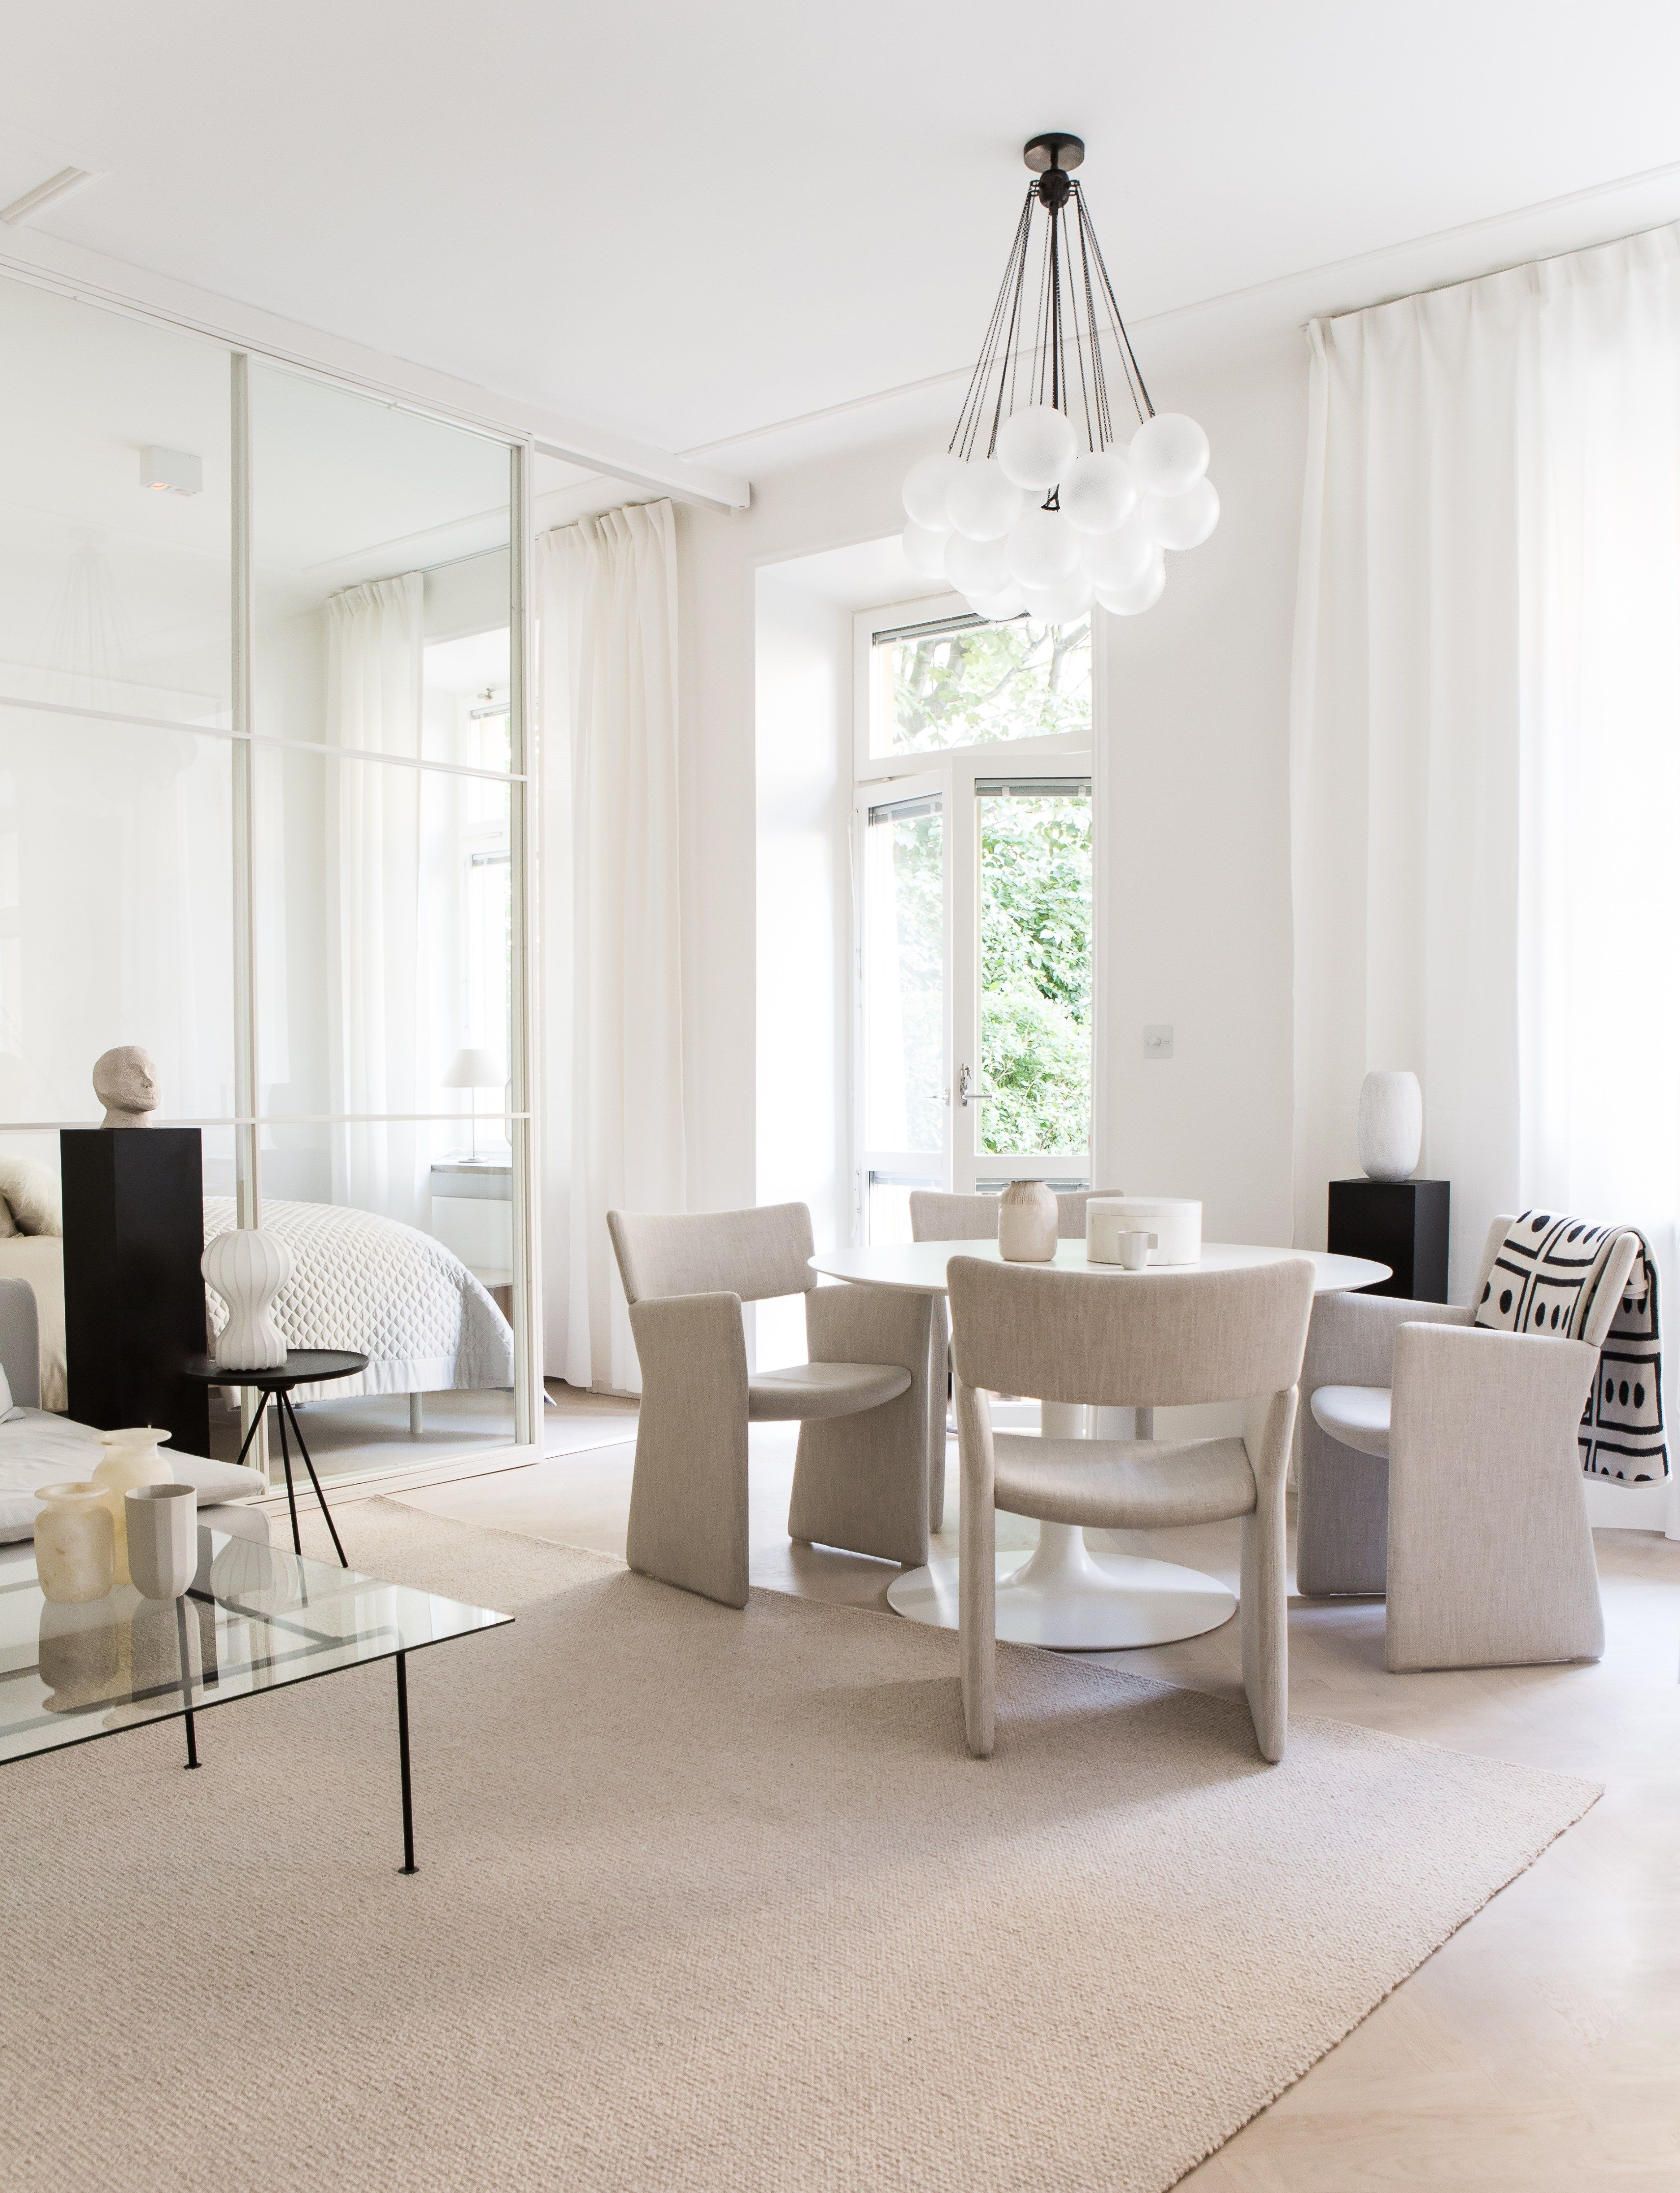 Home in beige, nudes and white - via Coco Lapine Design blog ...